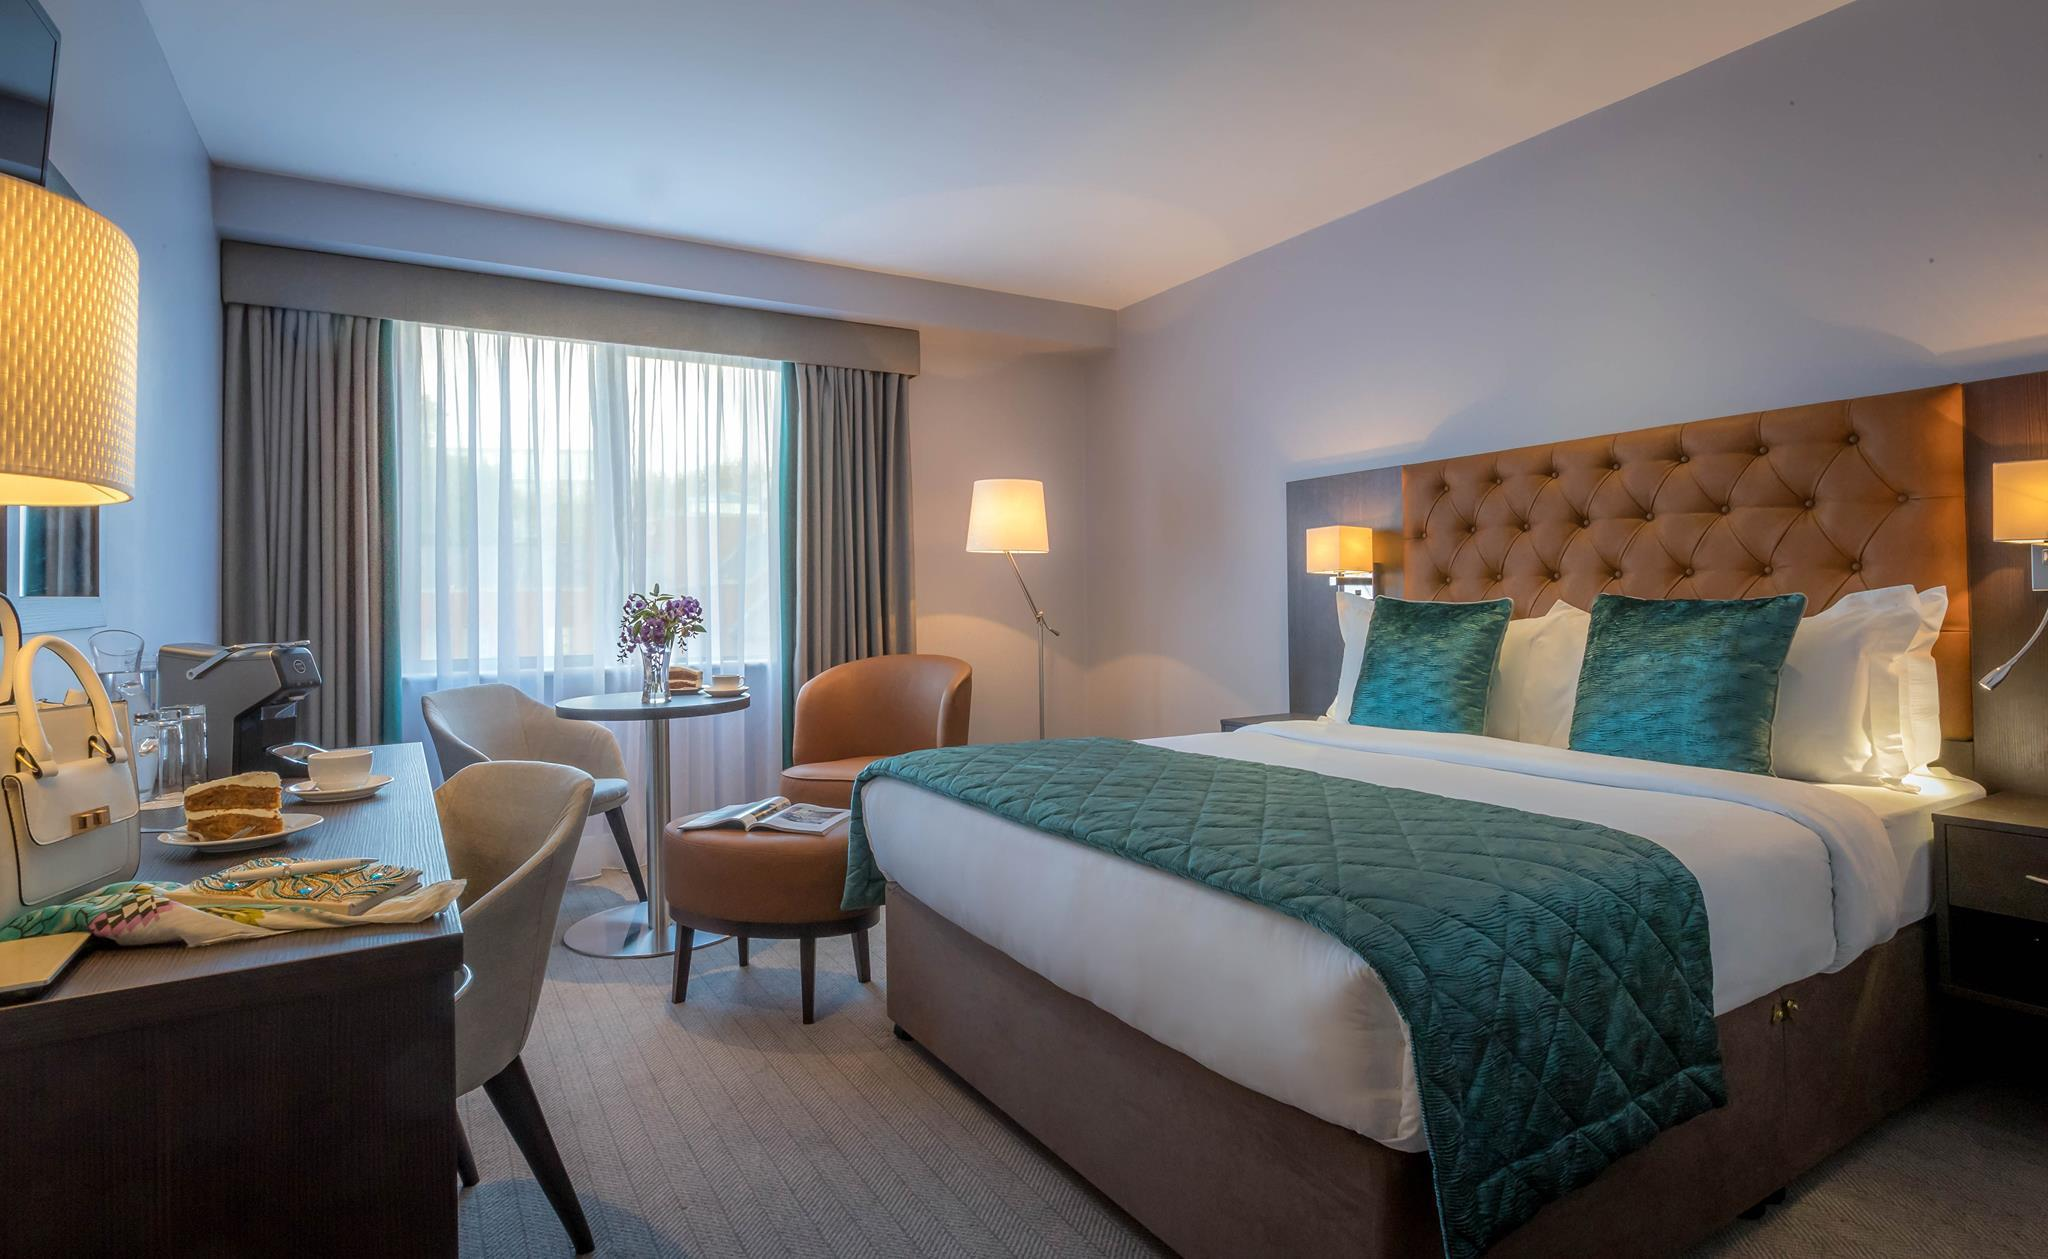 10 best cheap hotels in Dublin